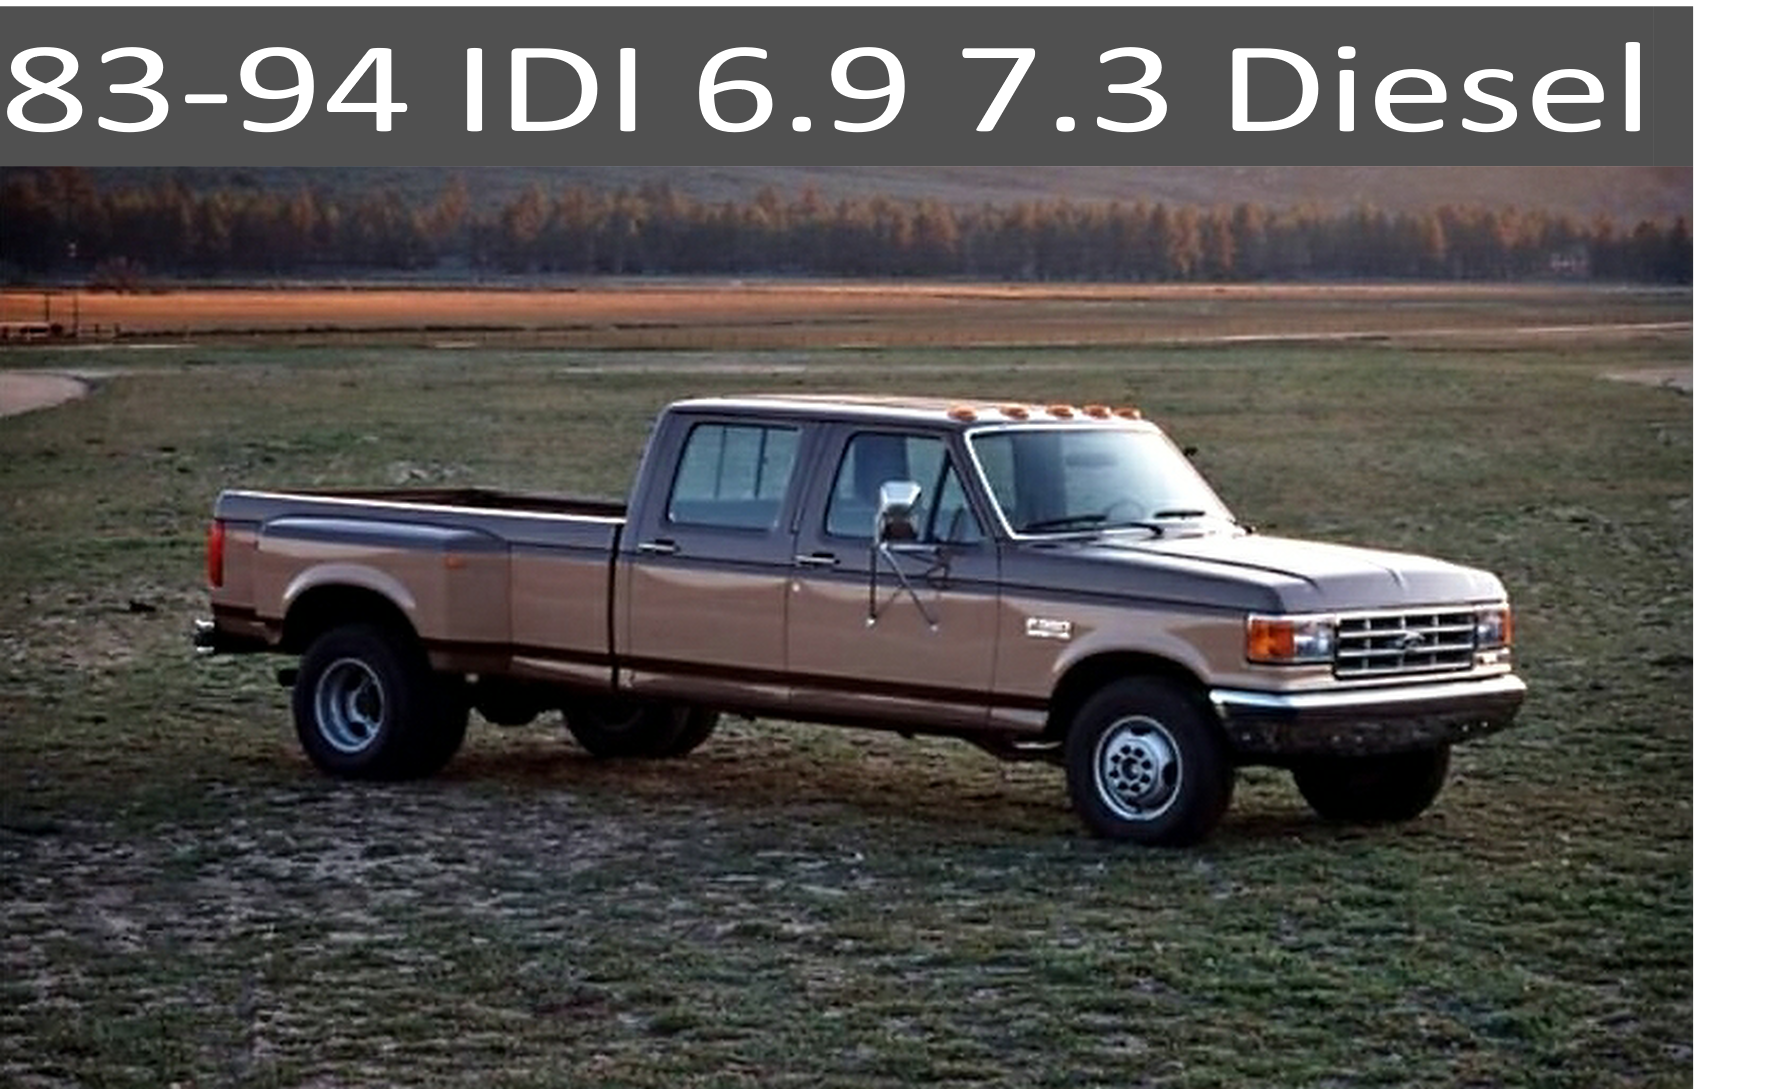 83-94 Ford IDI 6.9 and 7.3 Diesel Parts